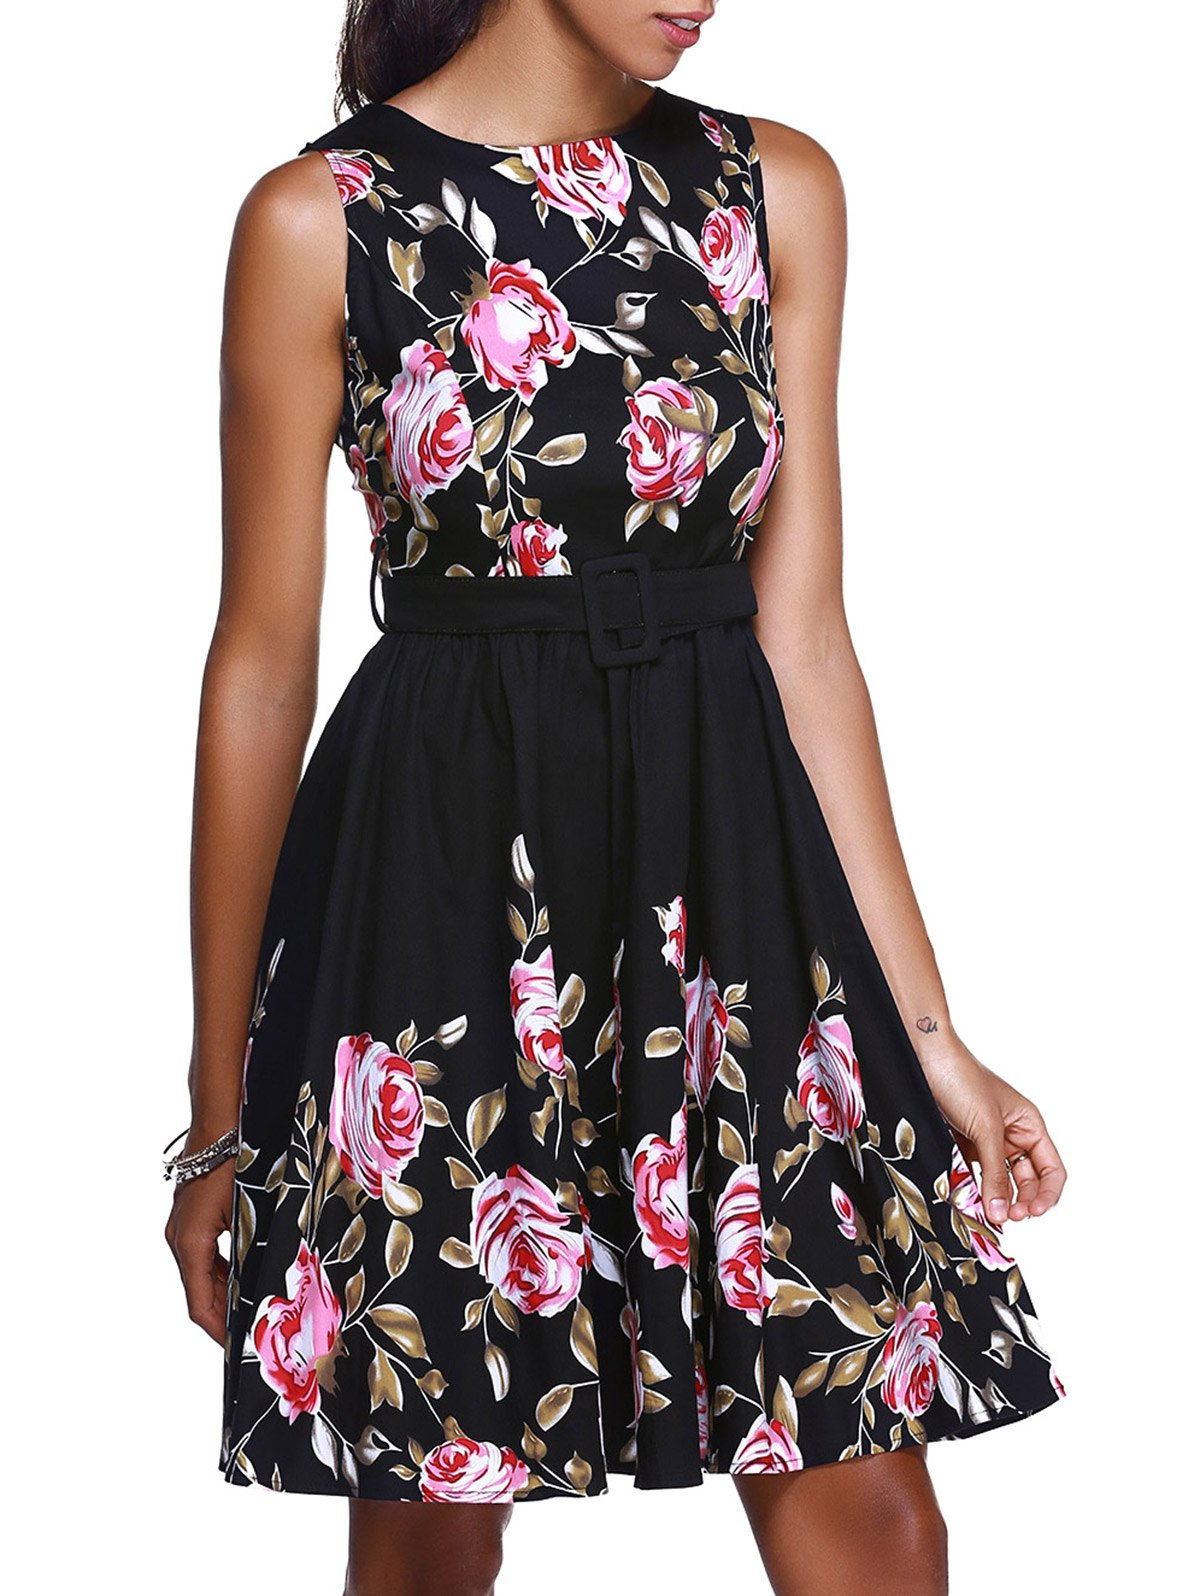 Vintage Women's Round Neck Floral Print High Waisted Midi Dress